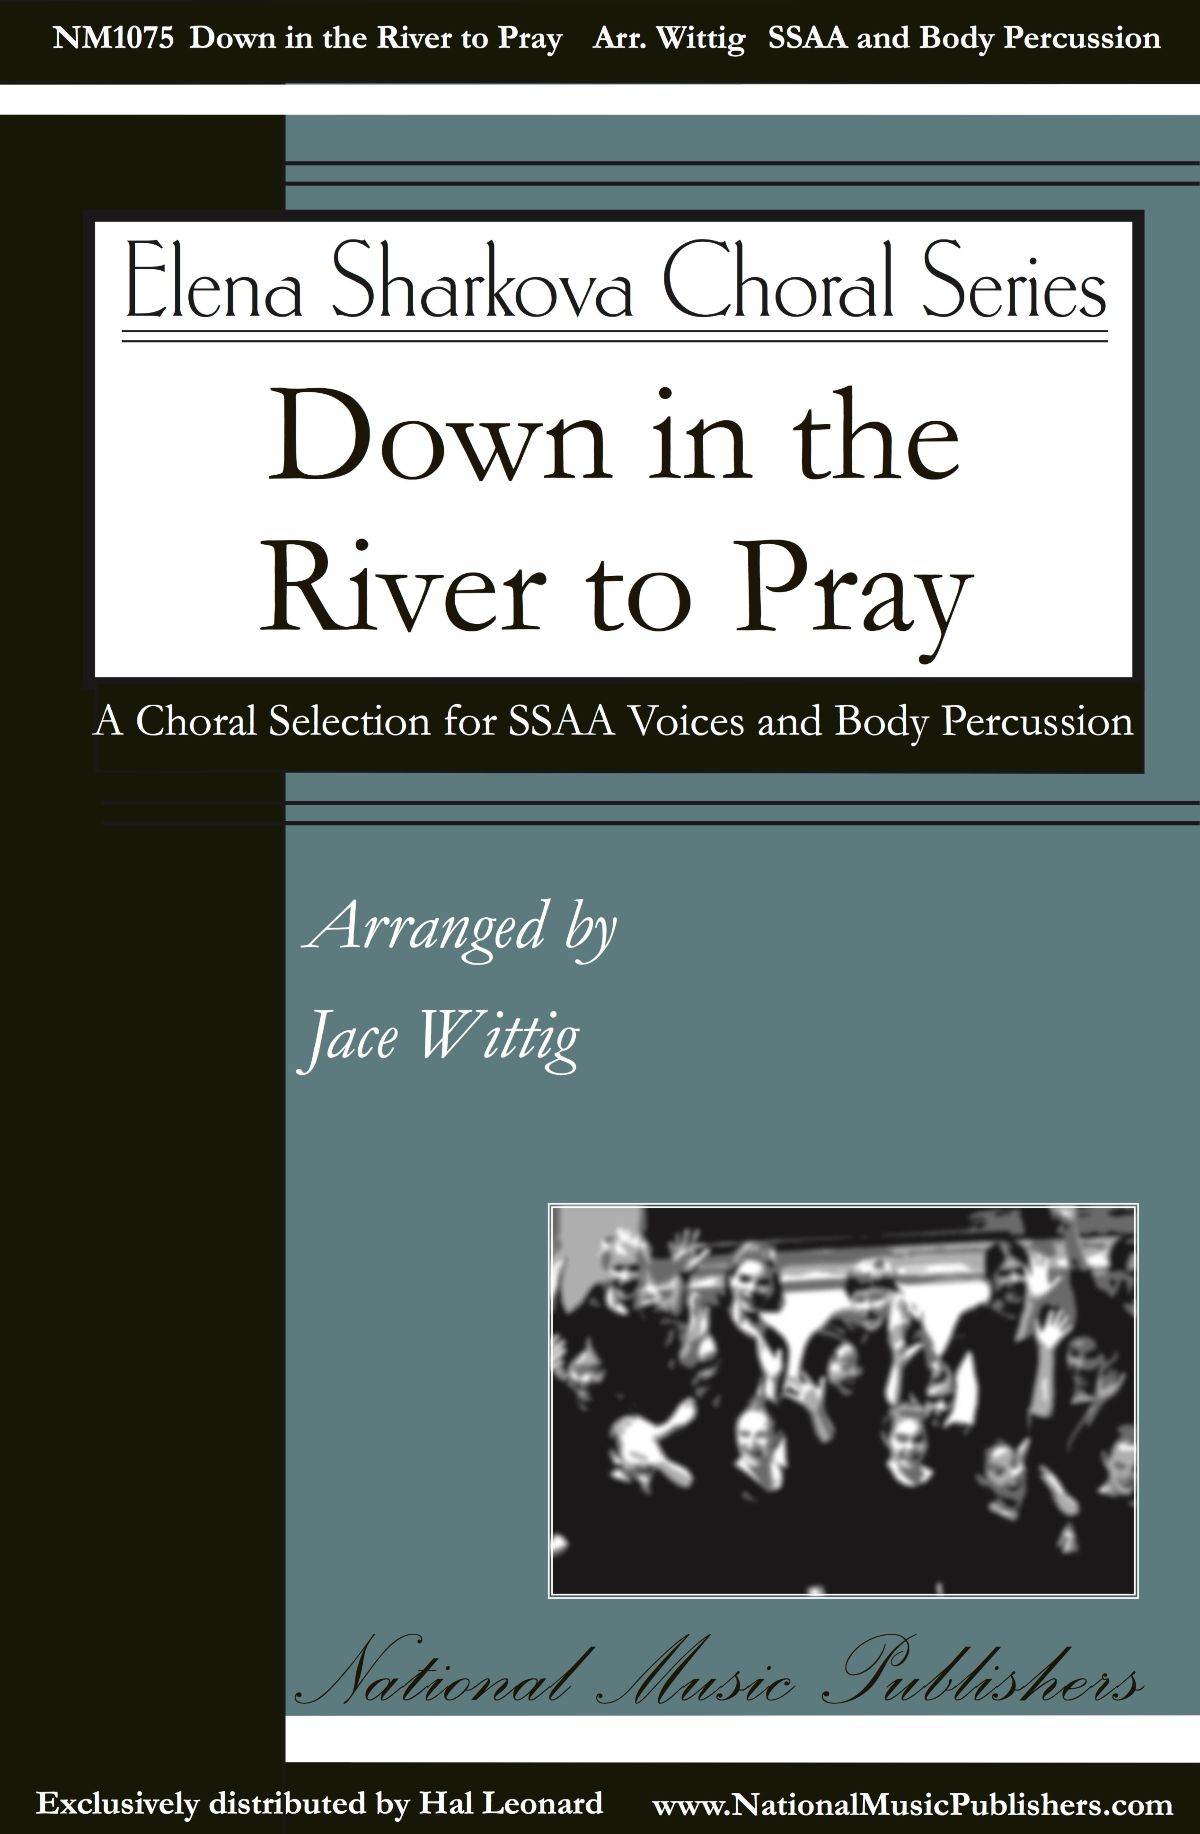 Down in the River to Pray Choral Sheet Music